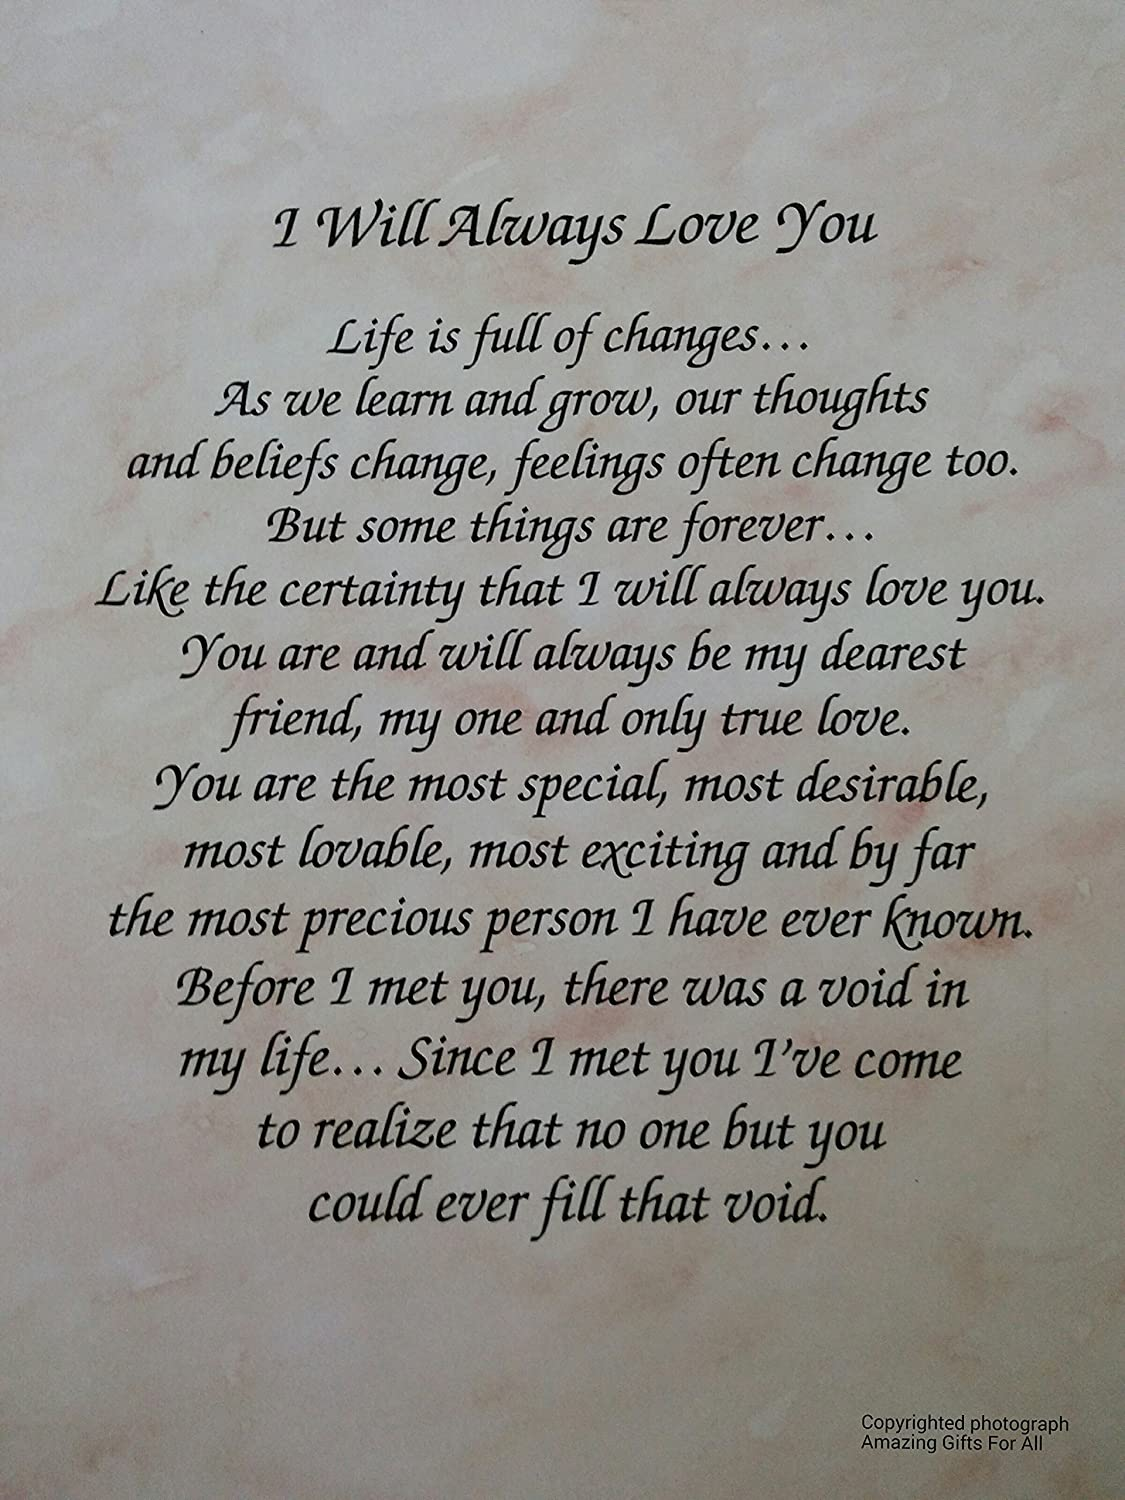 amazon com anniversary gift i will always love you poem for wife